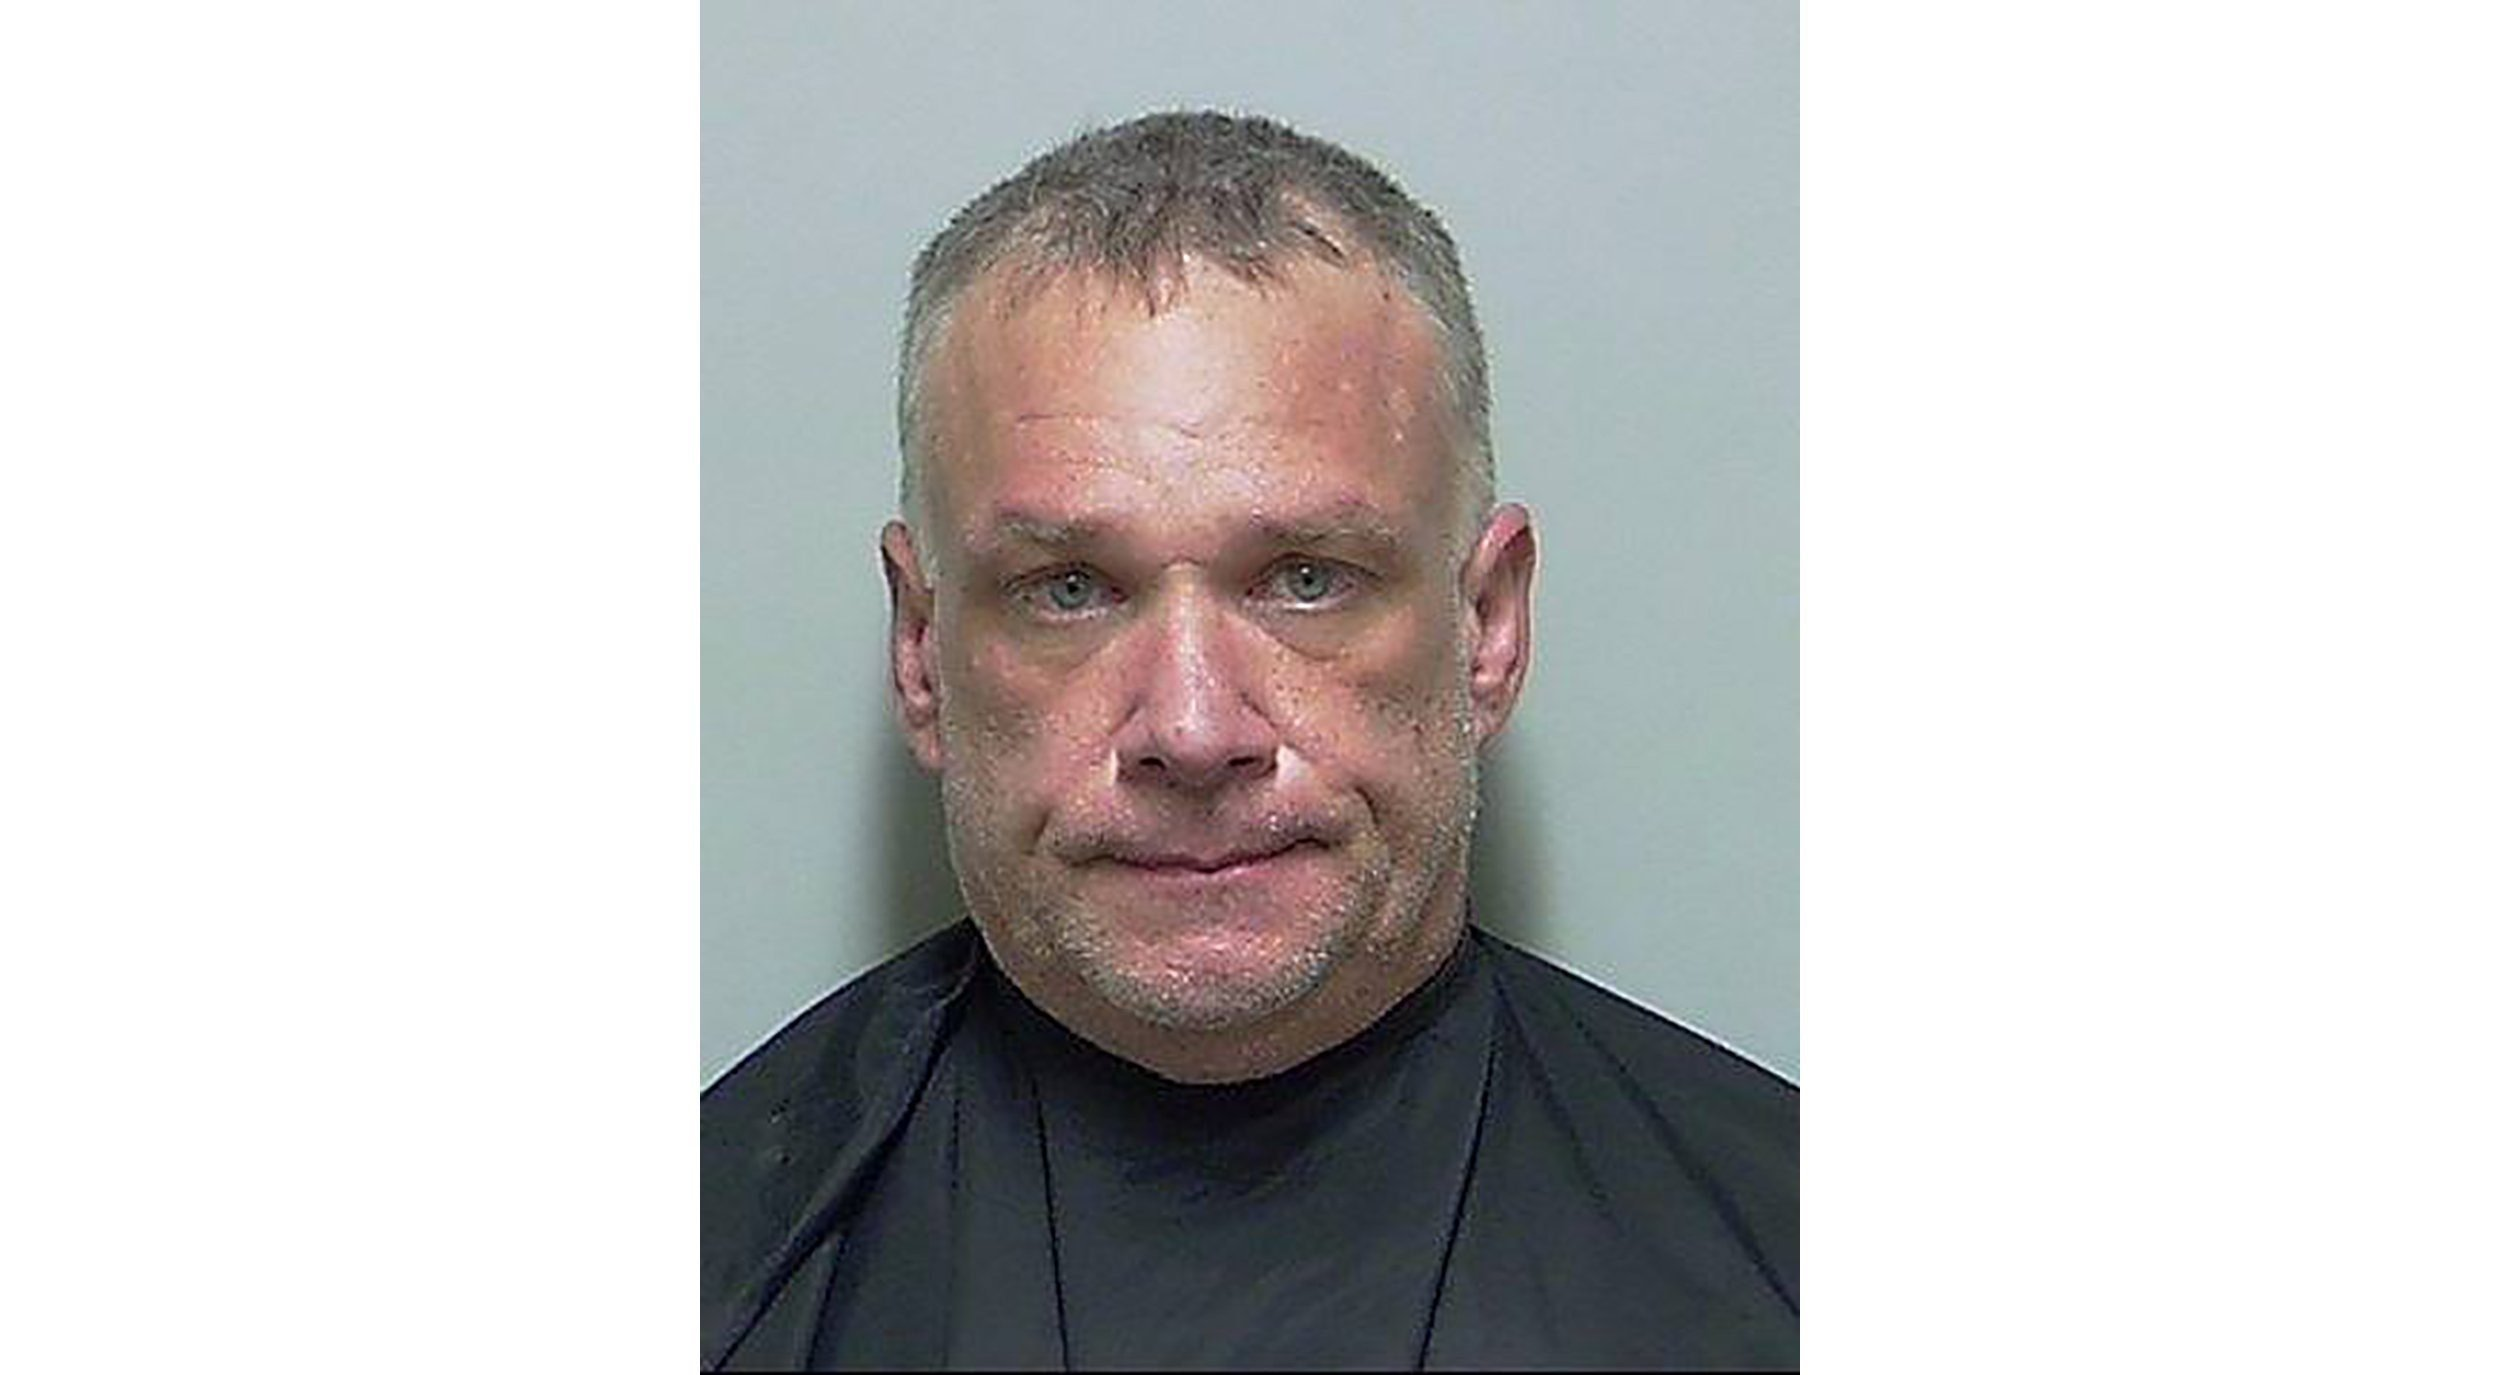 Douglas Kelly, 49, from Hawthrone, Florida, called the Putnam County Sheriff's Office on Tuesday, police said, asking them to test the drugs he bought a week earlier because he wanted to press charges against the person who sold them to him.